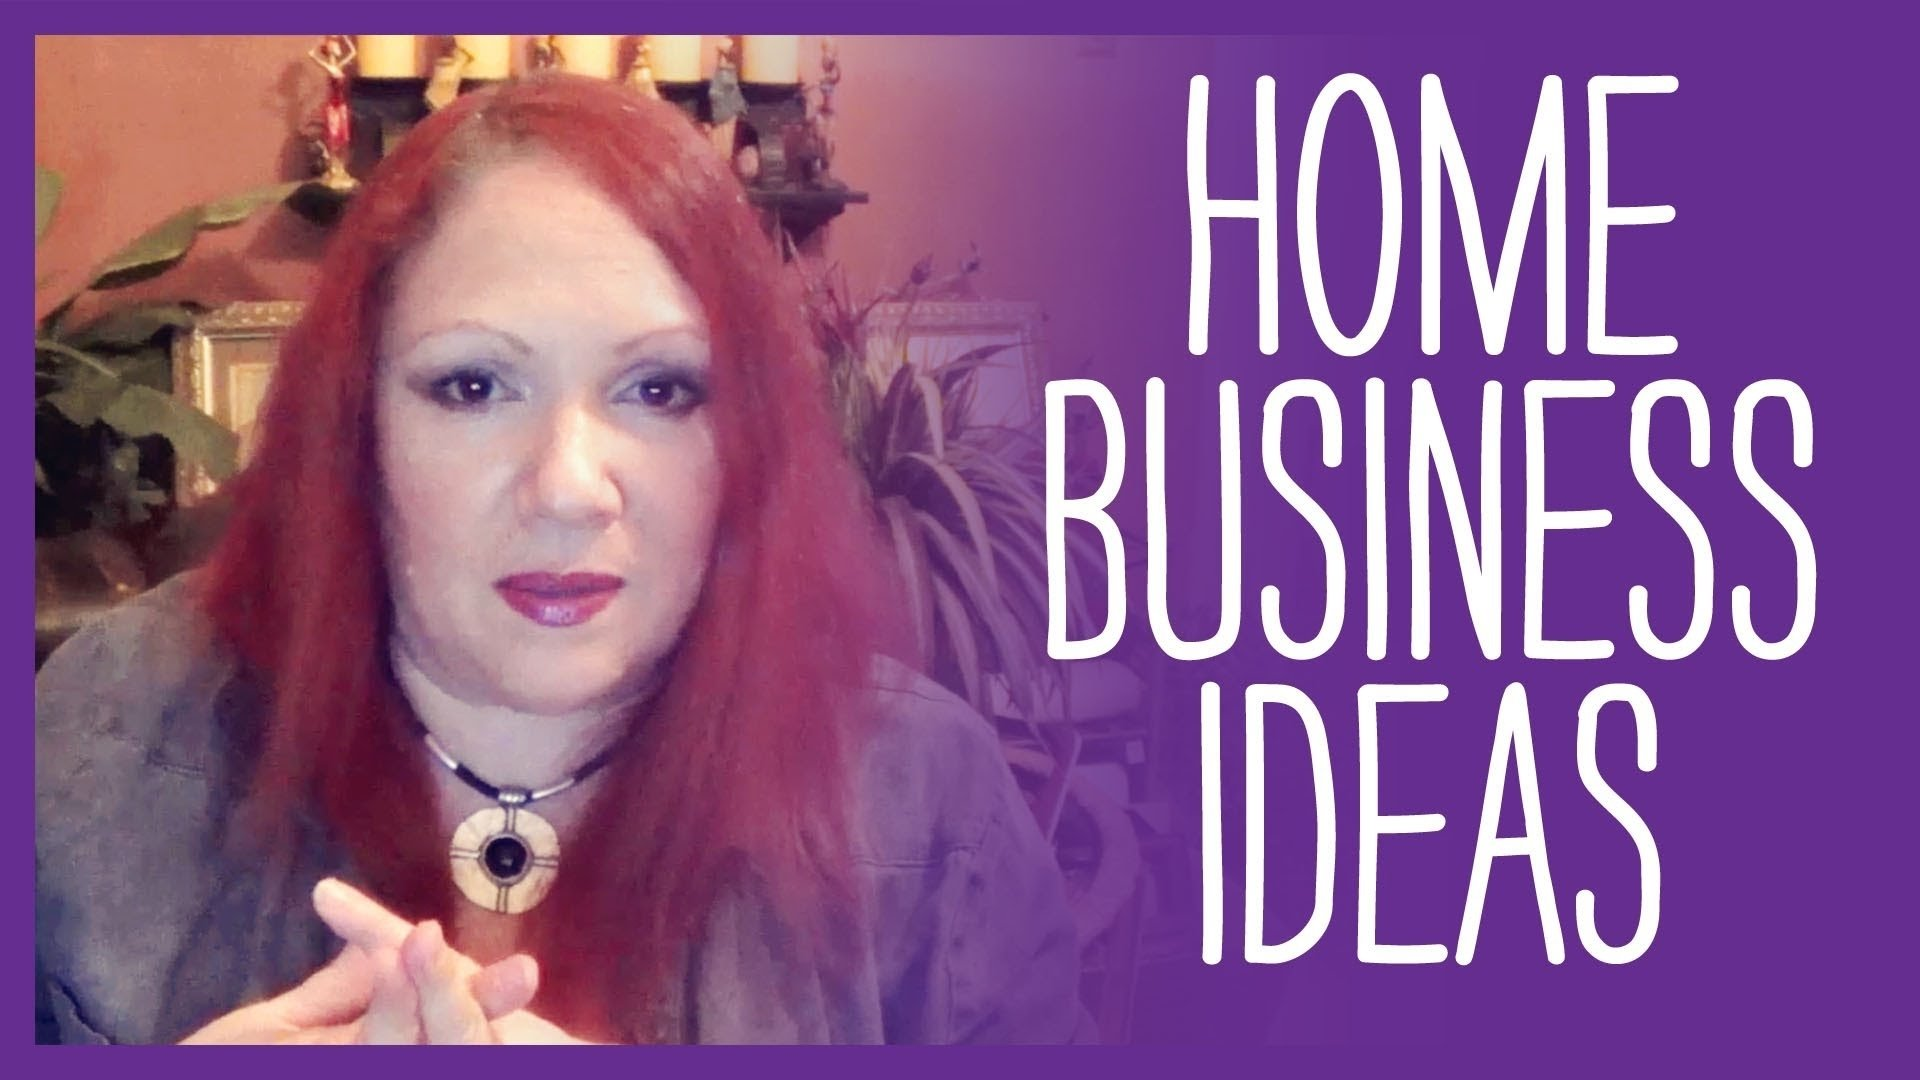 10 Wonderful Home Business Ideas For Moms seven inspiring home business ideas for stay at home moms youtube 1 2021